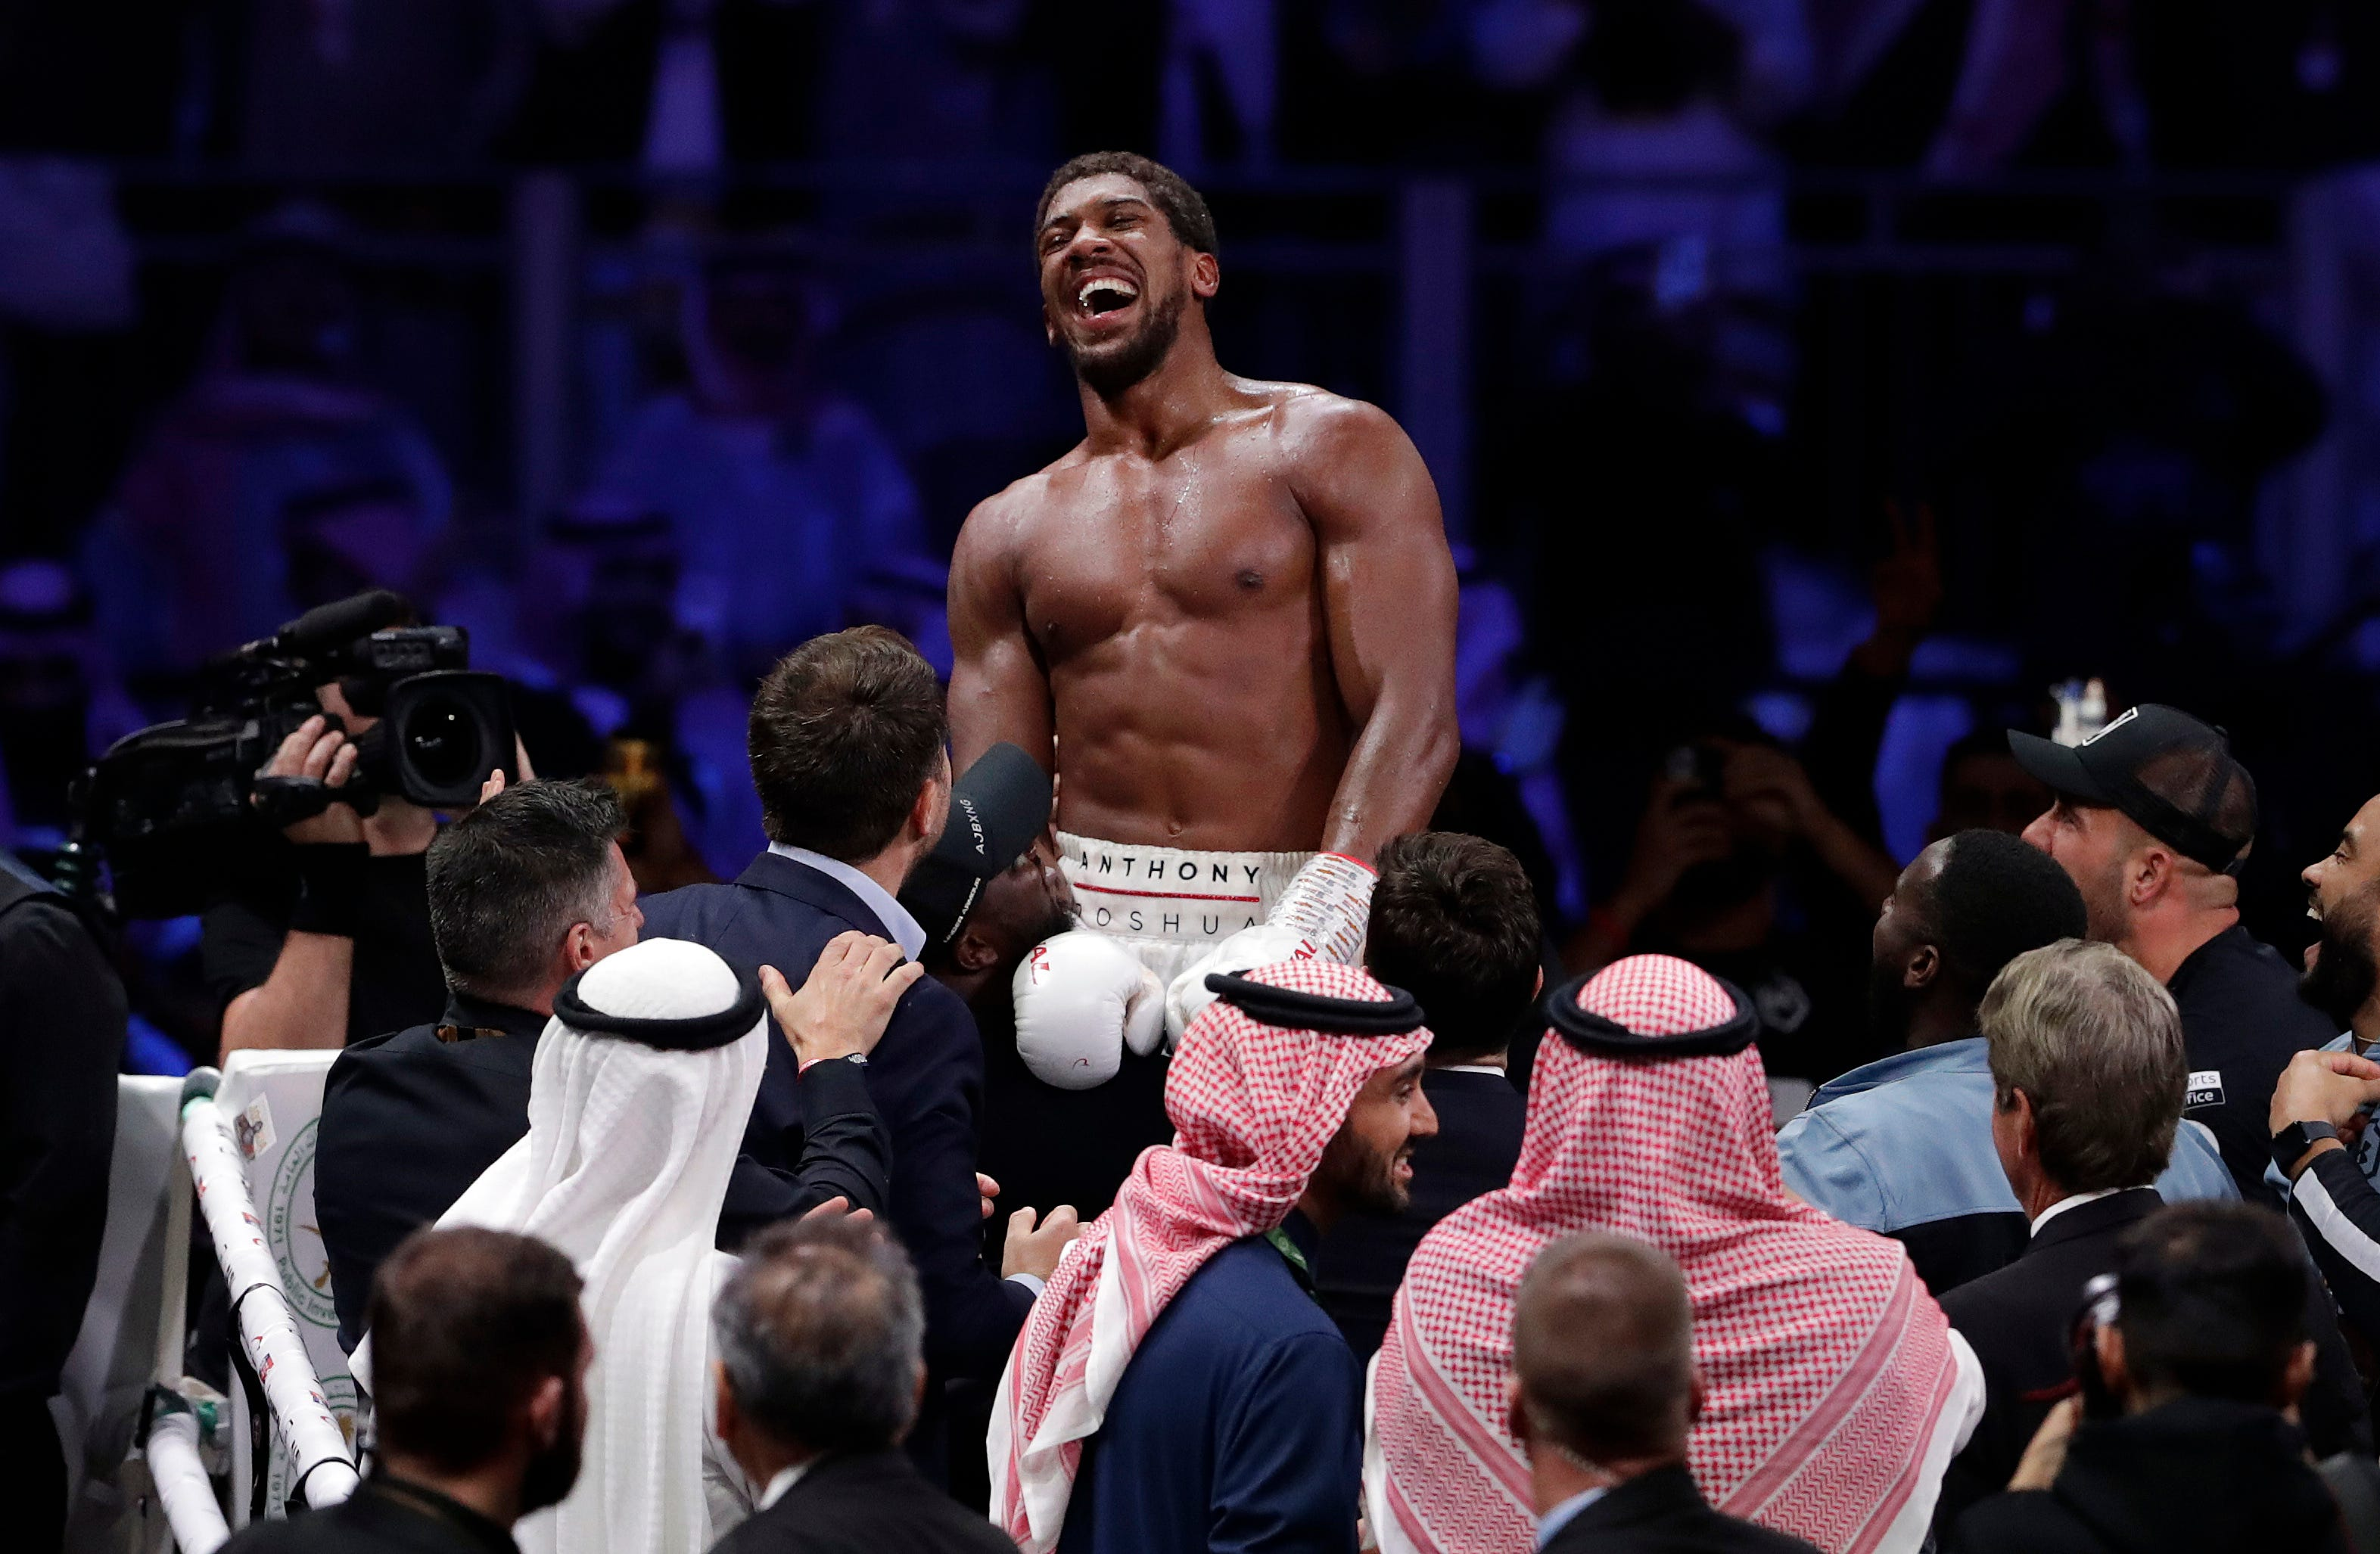 Anthony Joshua beats Andy Ruiz Jr. by unanimous decision: Round-by-round of heavyweight rematch